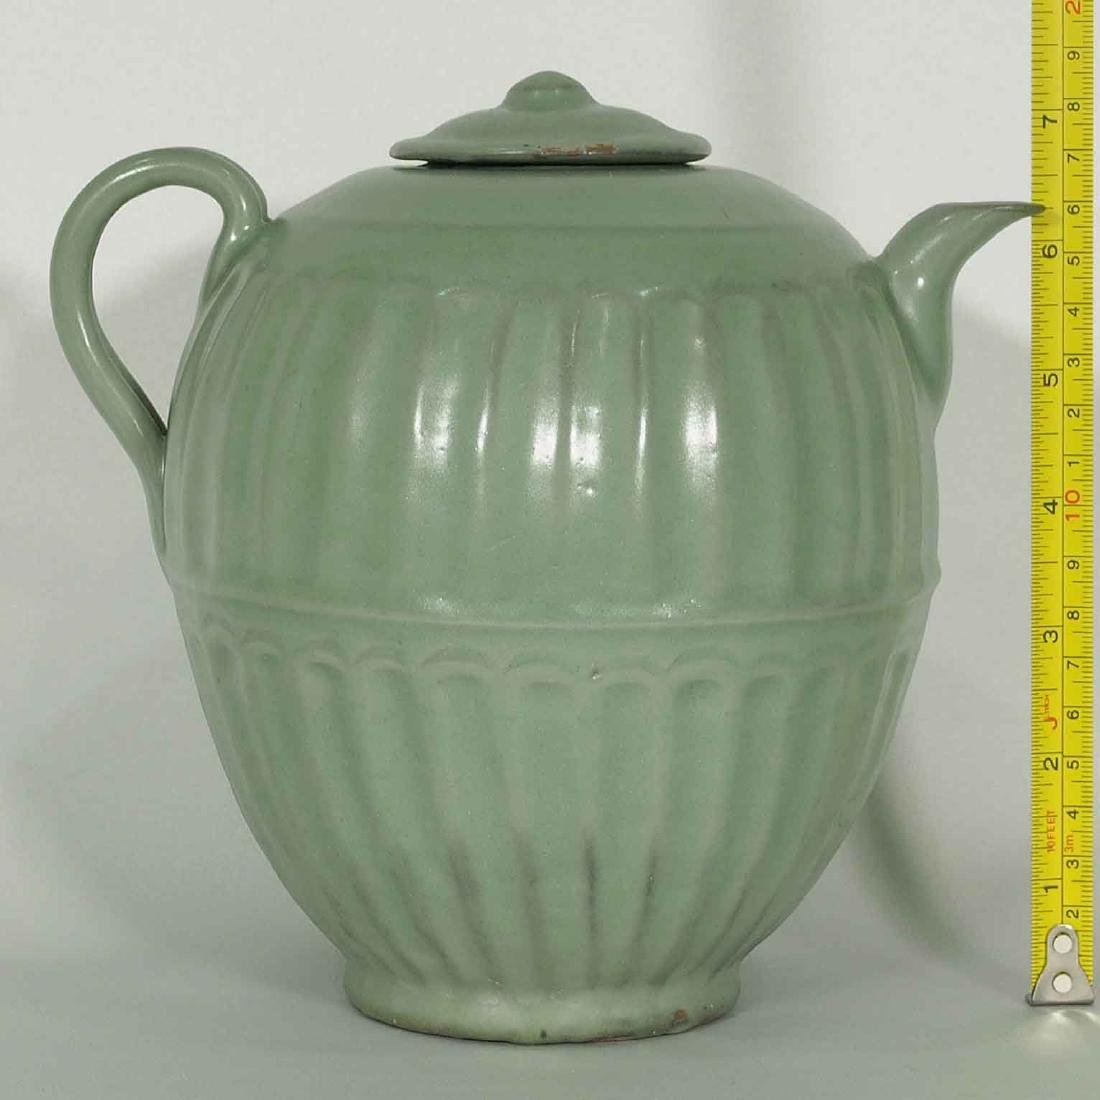 Longquan Fluted Ewer with Lid, late Southern Song - 10